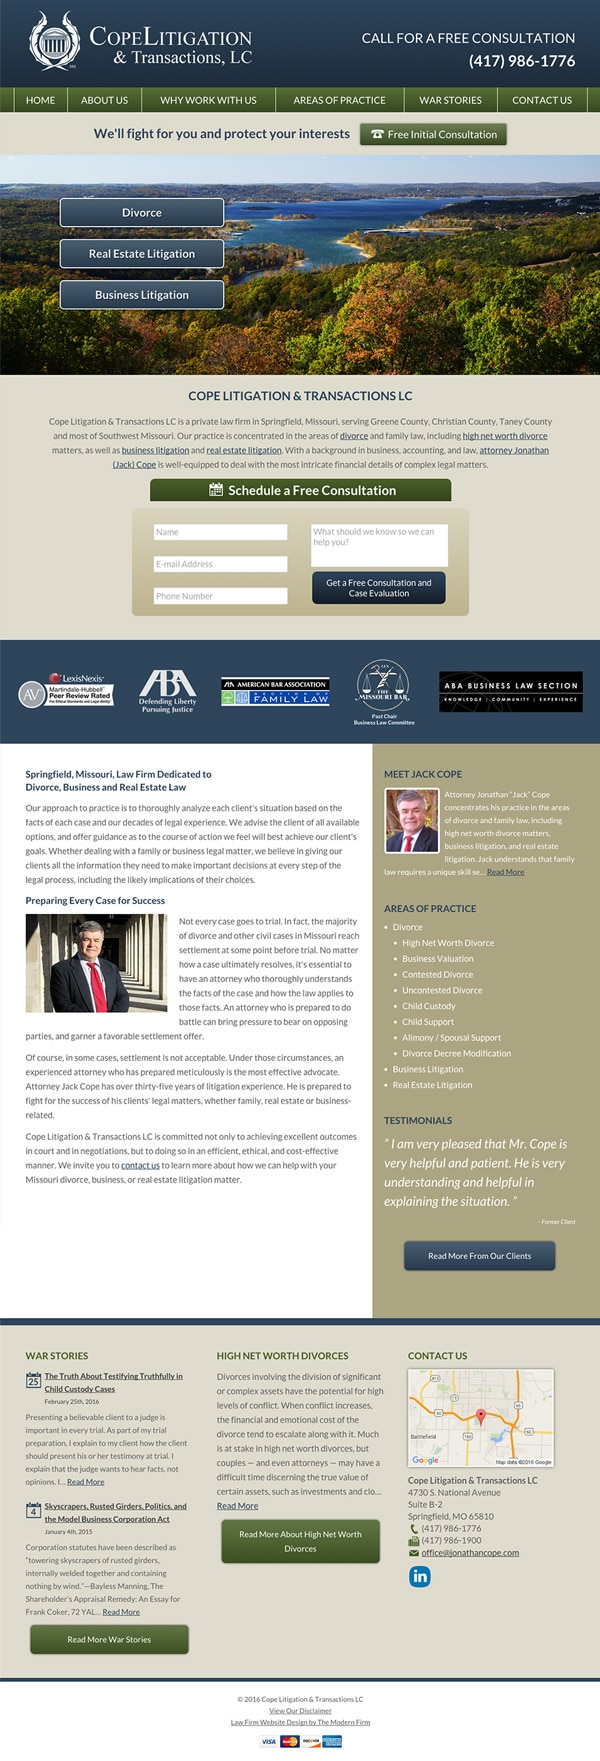 Law Firm Website Design for Cope Litigation & Transactions, LC